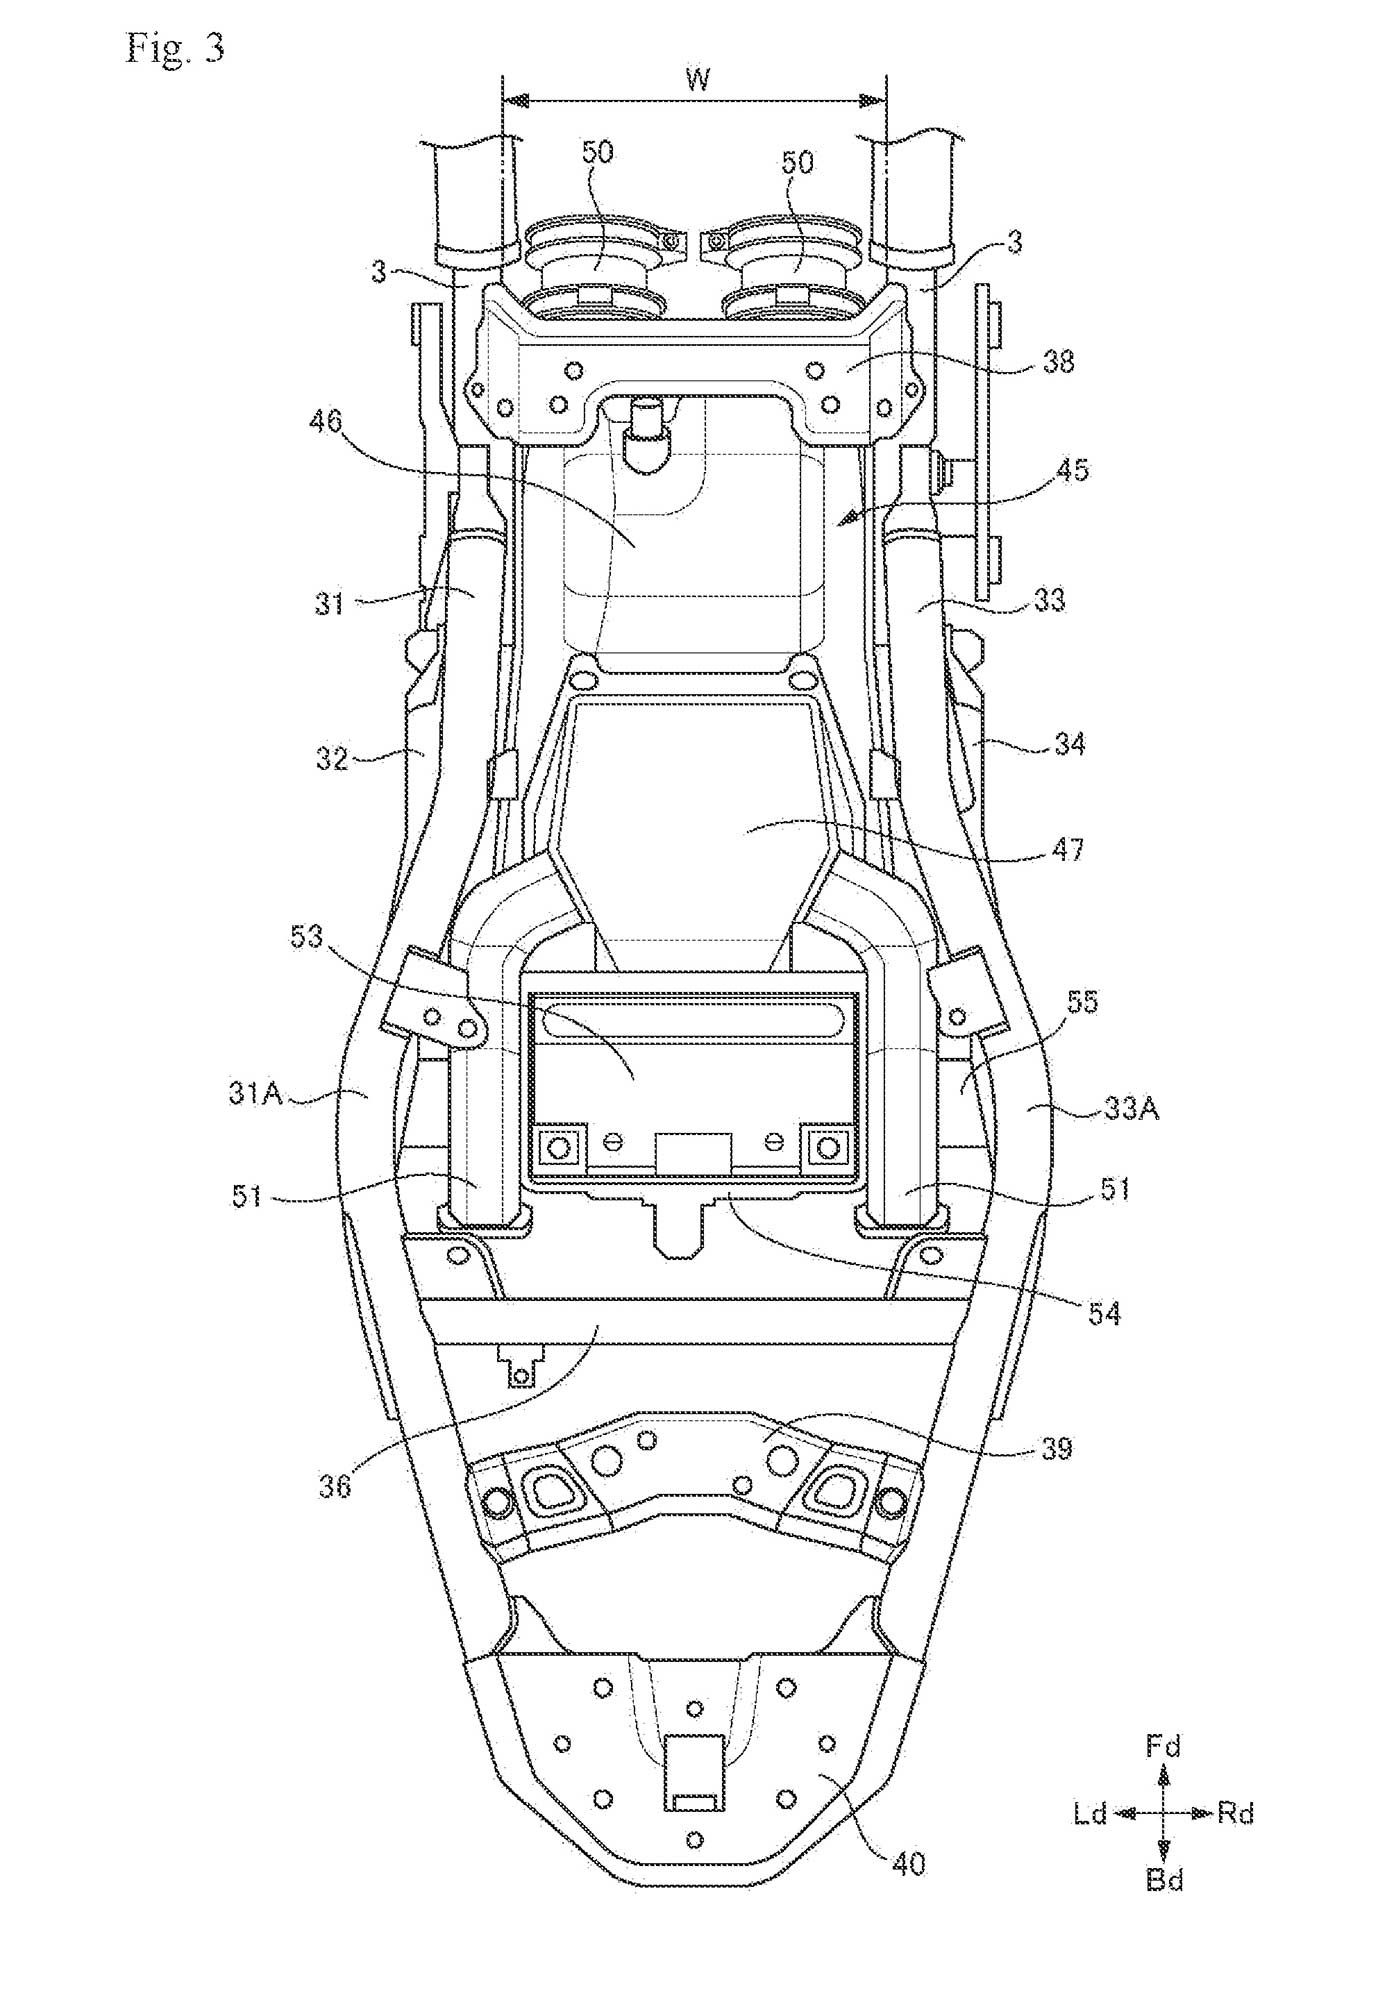 A patent image of the upcoming 700cc parallel-twin engine in a SV650-like motorcycle